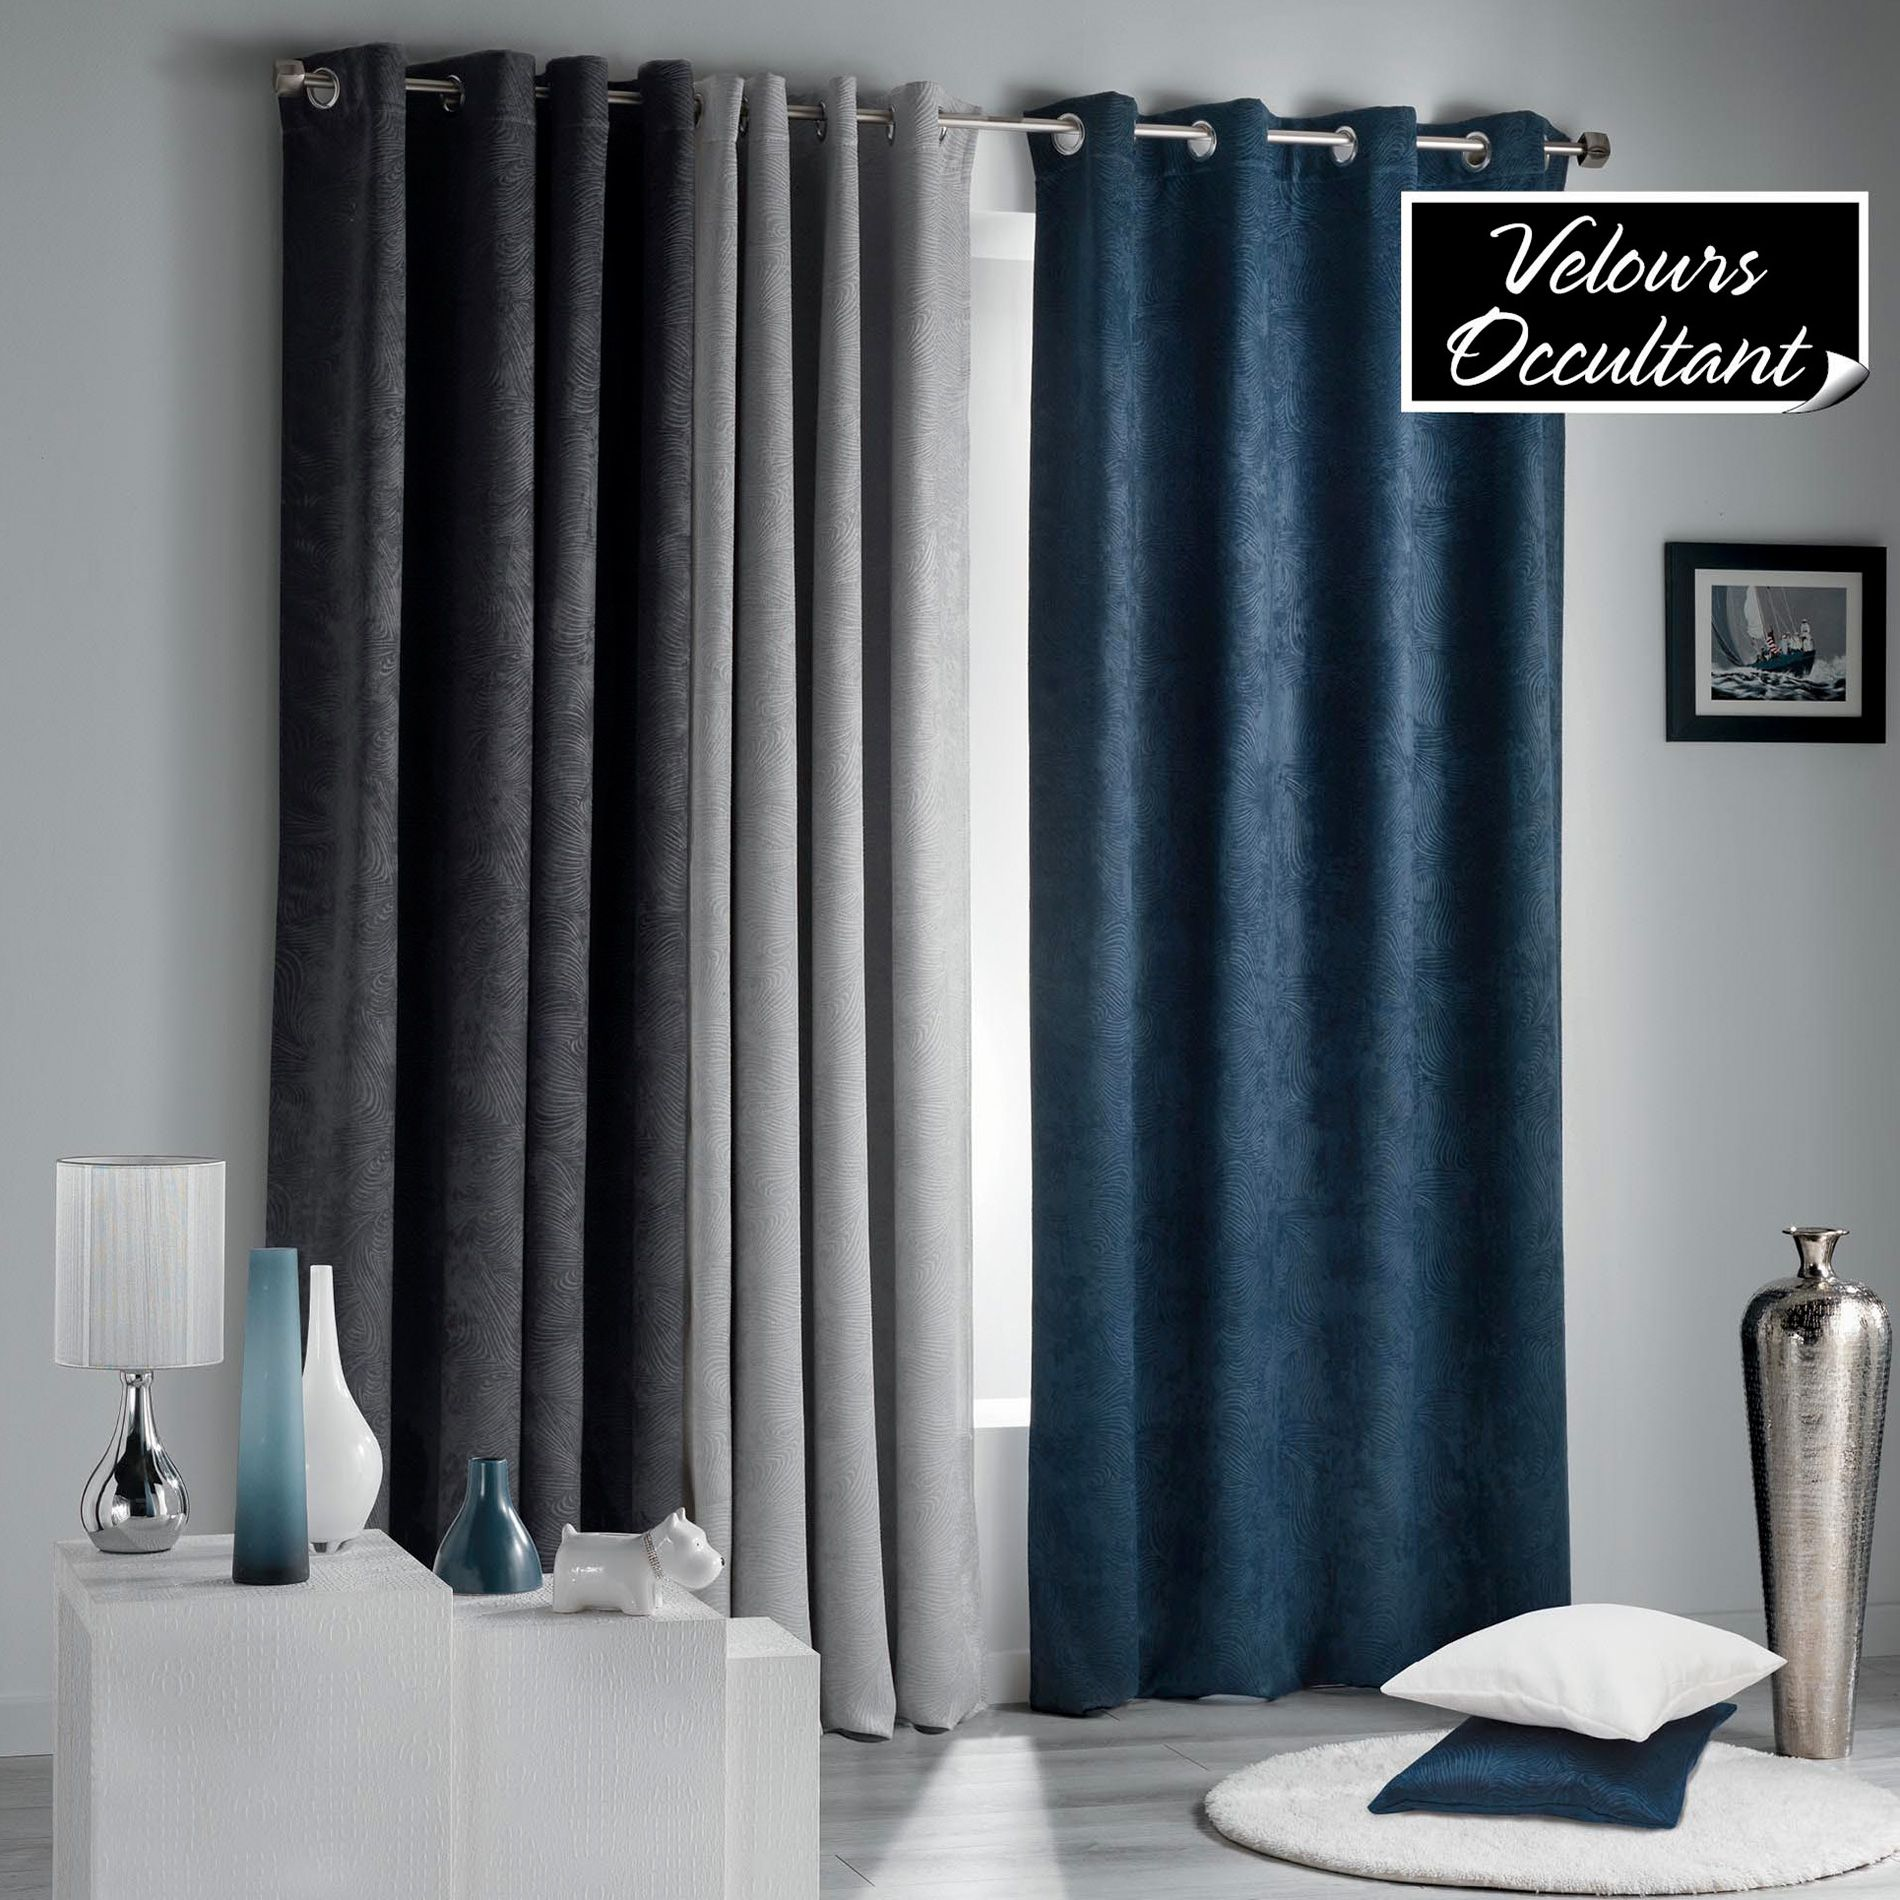 rideau occultant 140 x 240 cm dreamtime bleu indigo. Black Bedroom Furniture Sets. Home Design Ideas